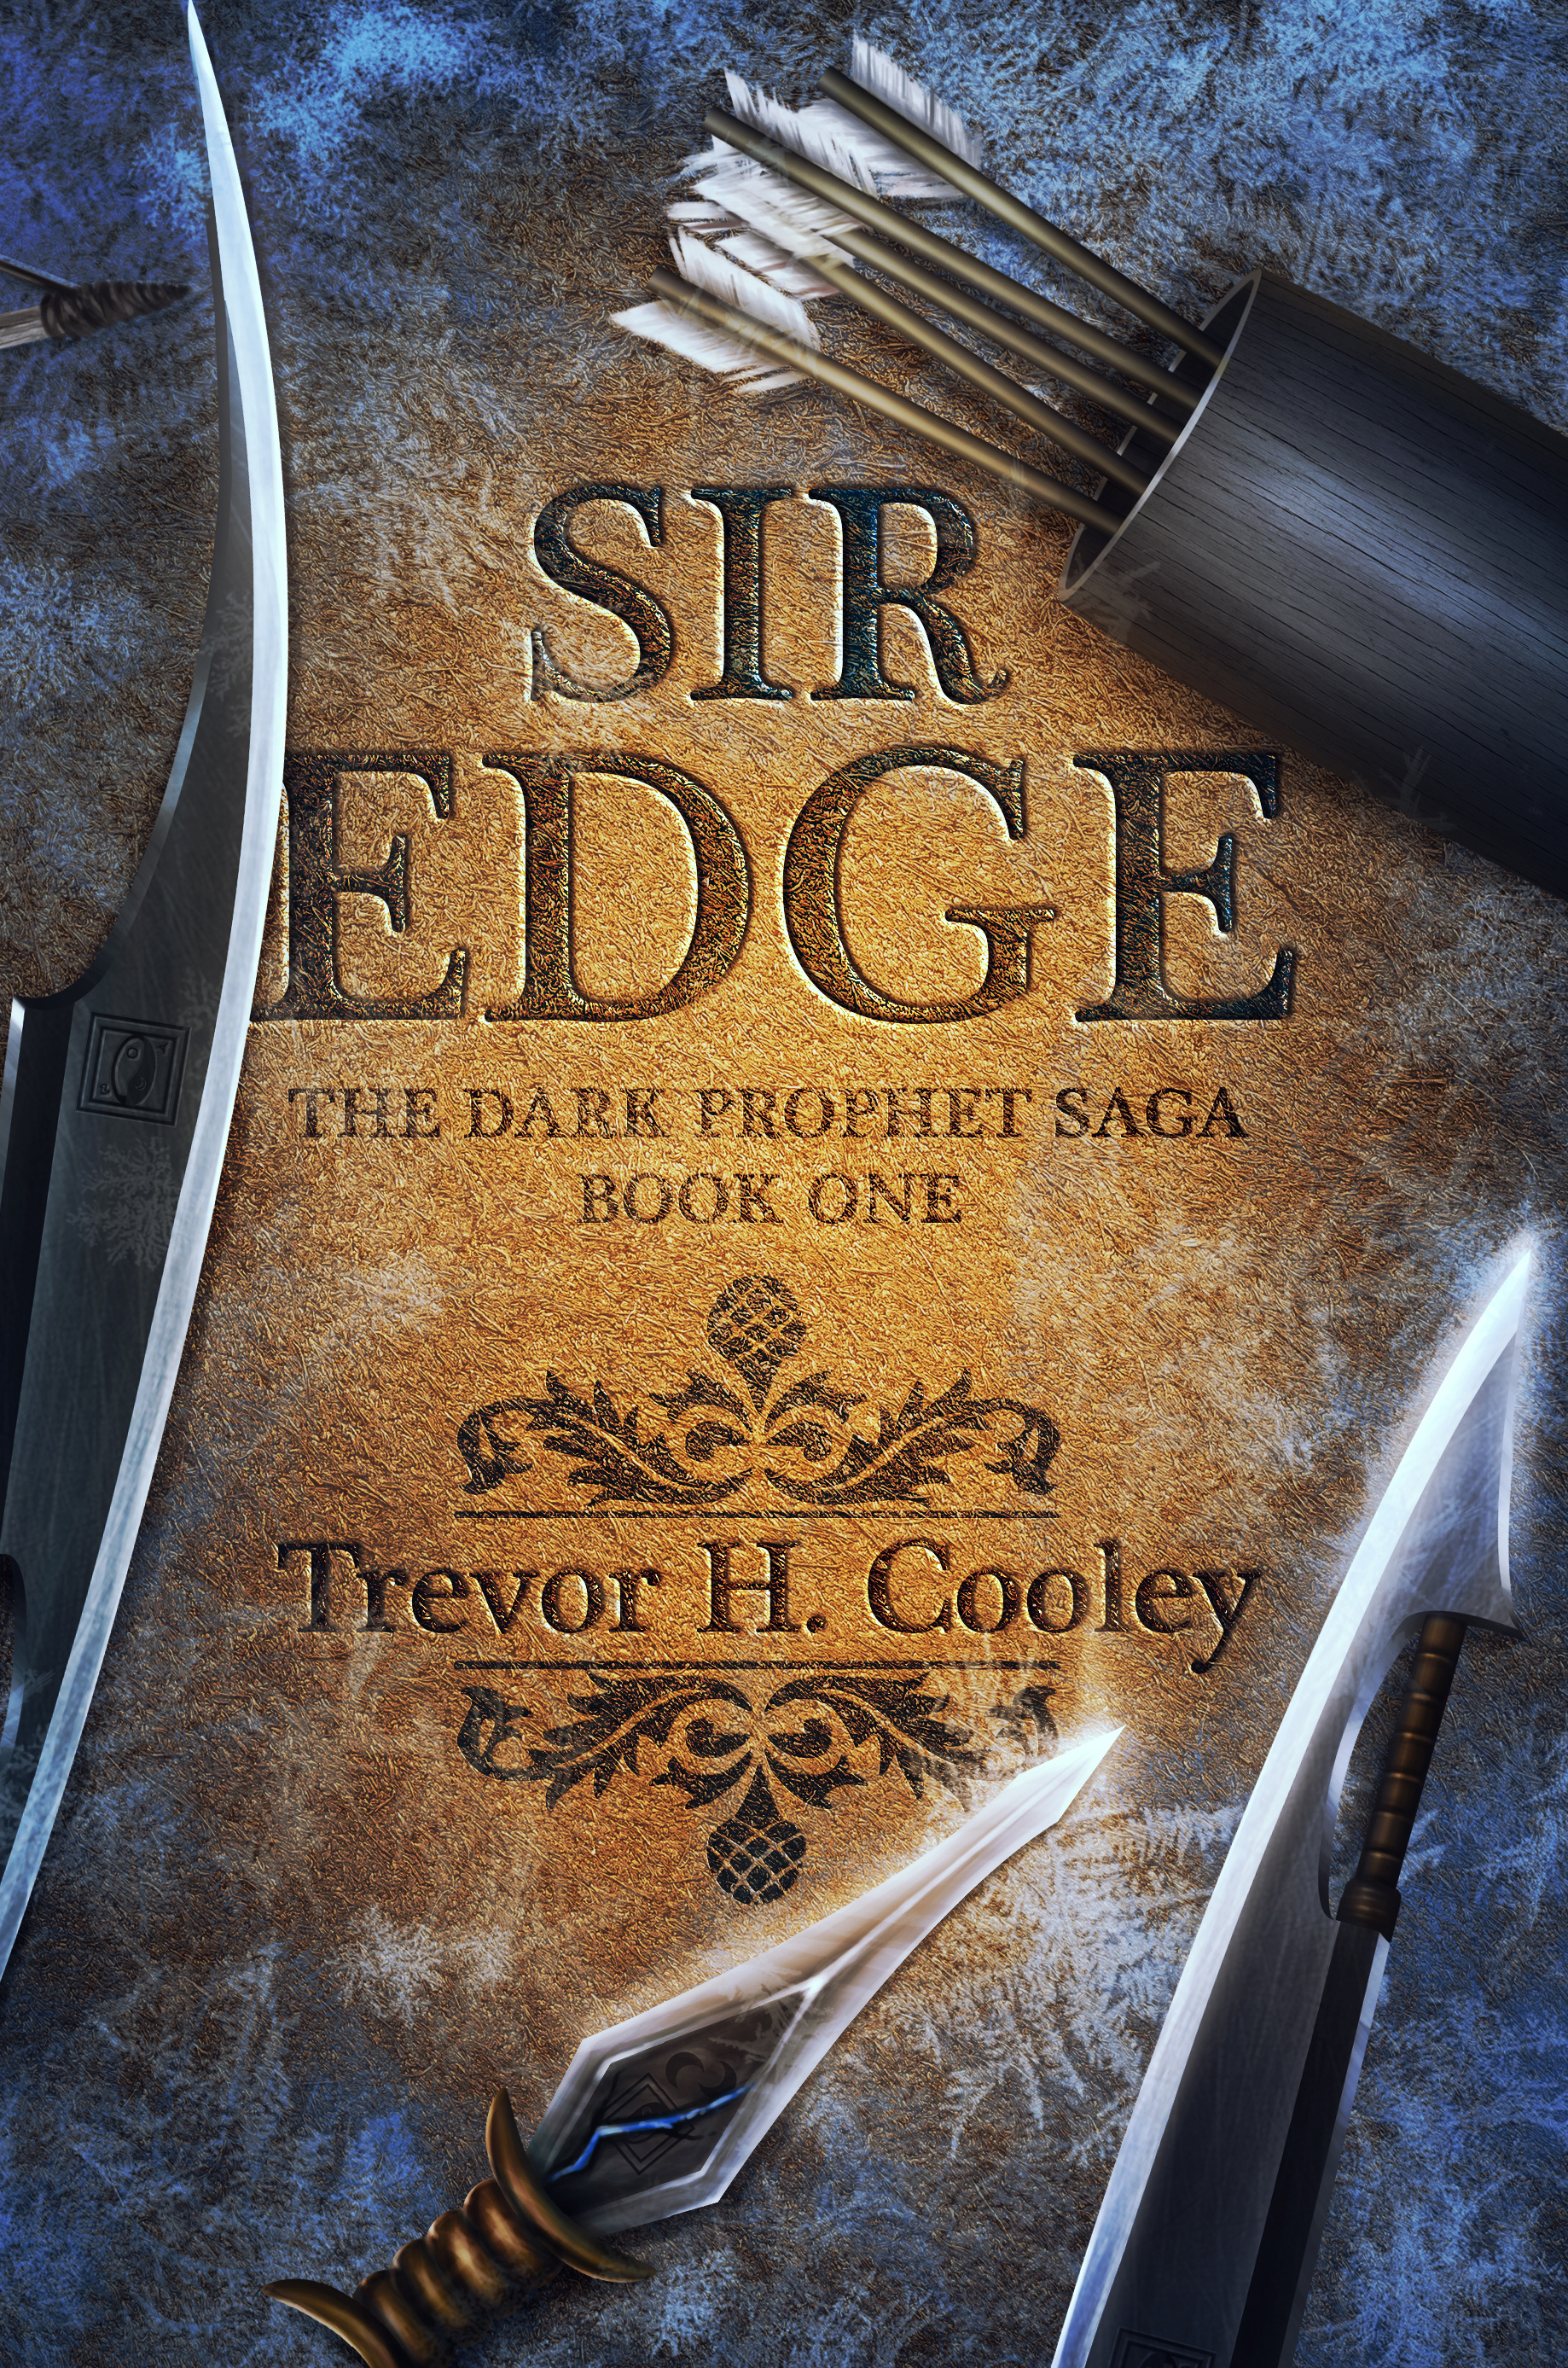 Trevor H  Cooley   Author of the Bowl of Souls Series